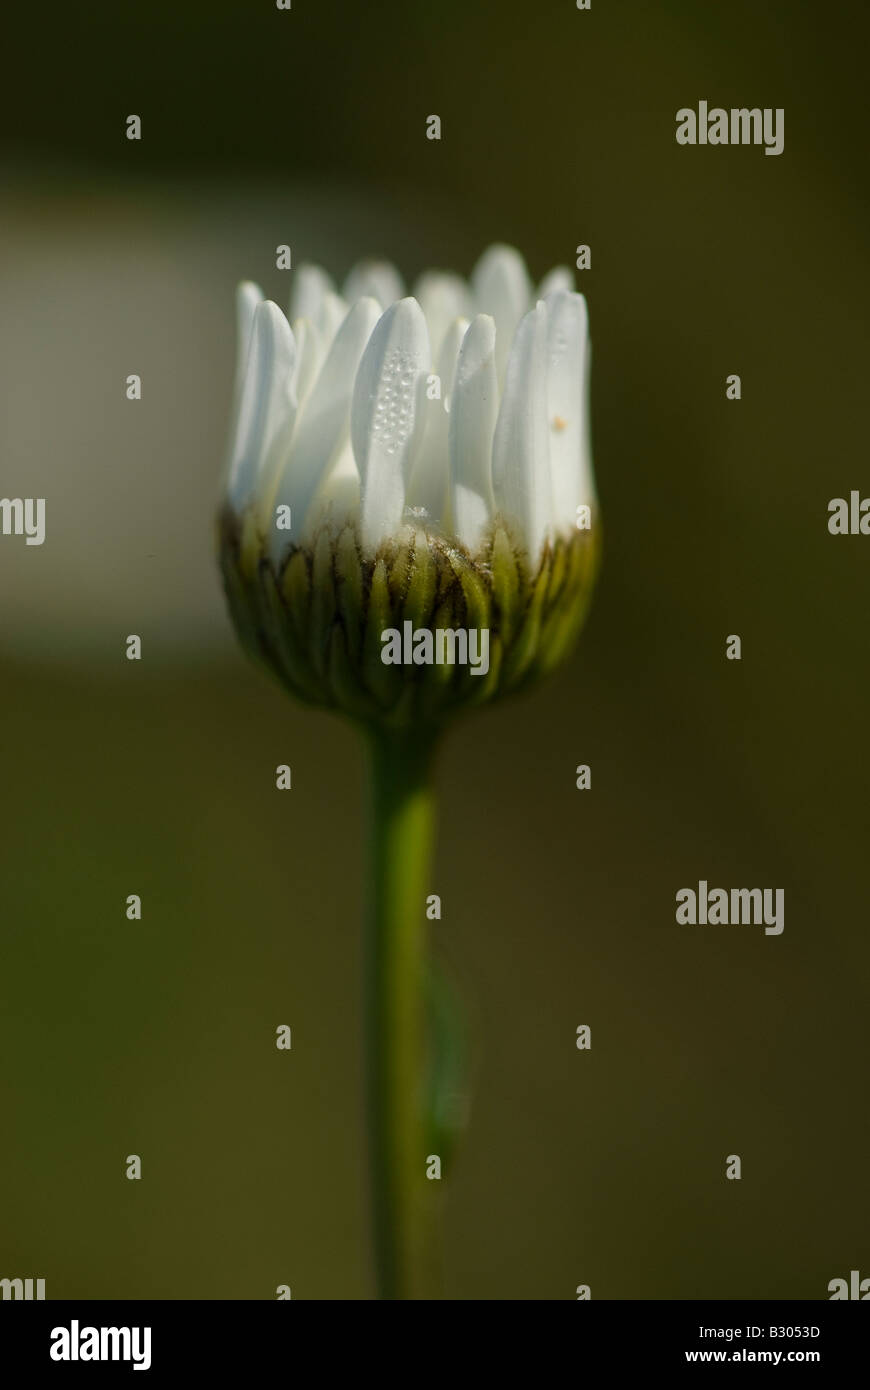 Closed wild daisy with dewdrops on petals. - Stock Image